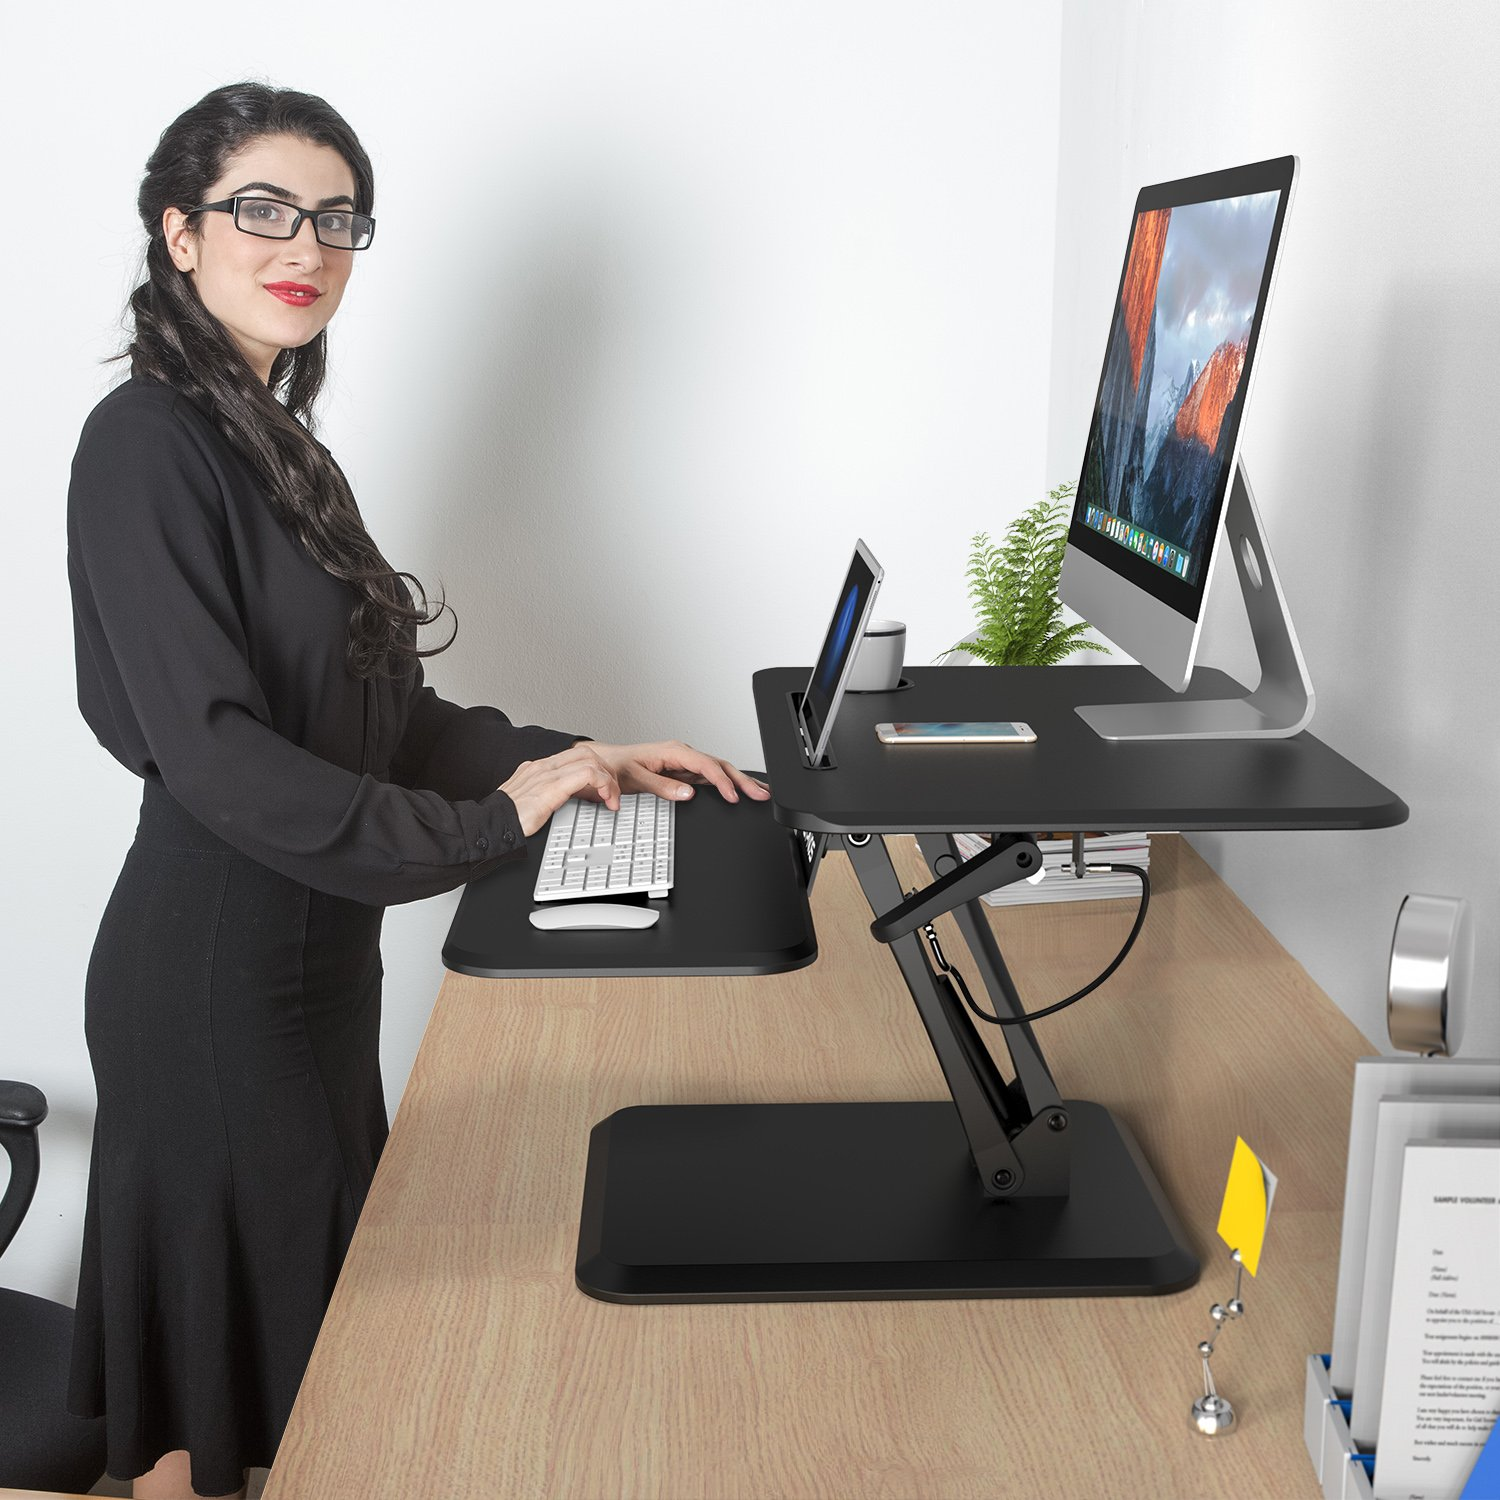 SLYPNOS Height Adjustable Standing Desk Converter Sit to Stand up Desk Riser, with Keyboard Mouse Deck and Cup Holder, 25 Inches Wide Ergonomic Workstation by SLYPNOS